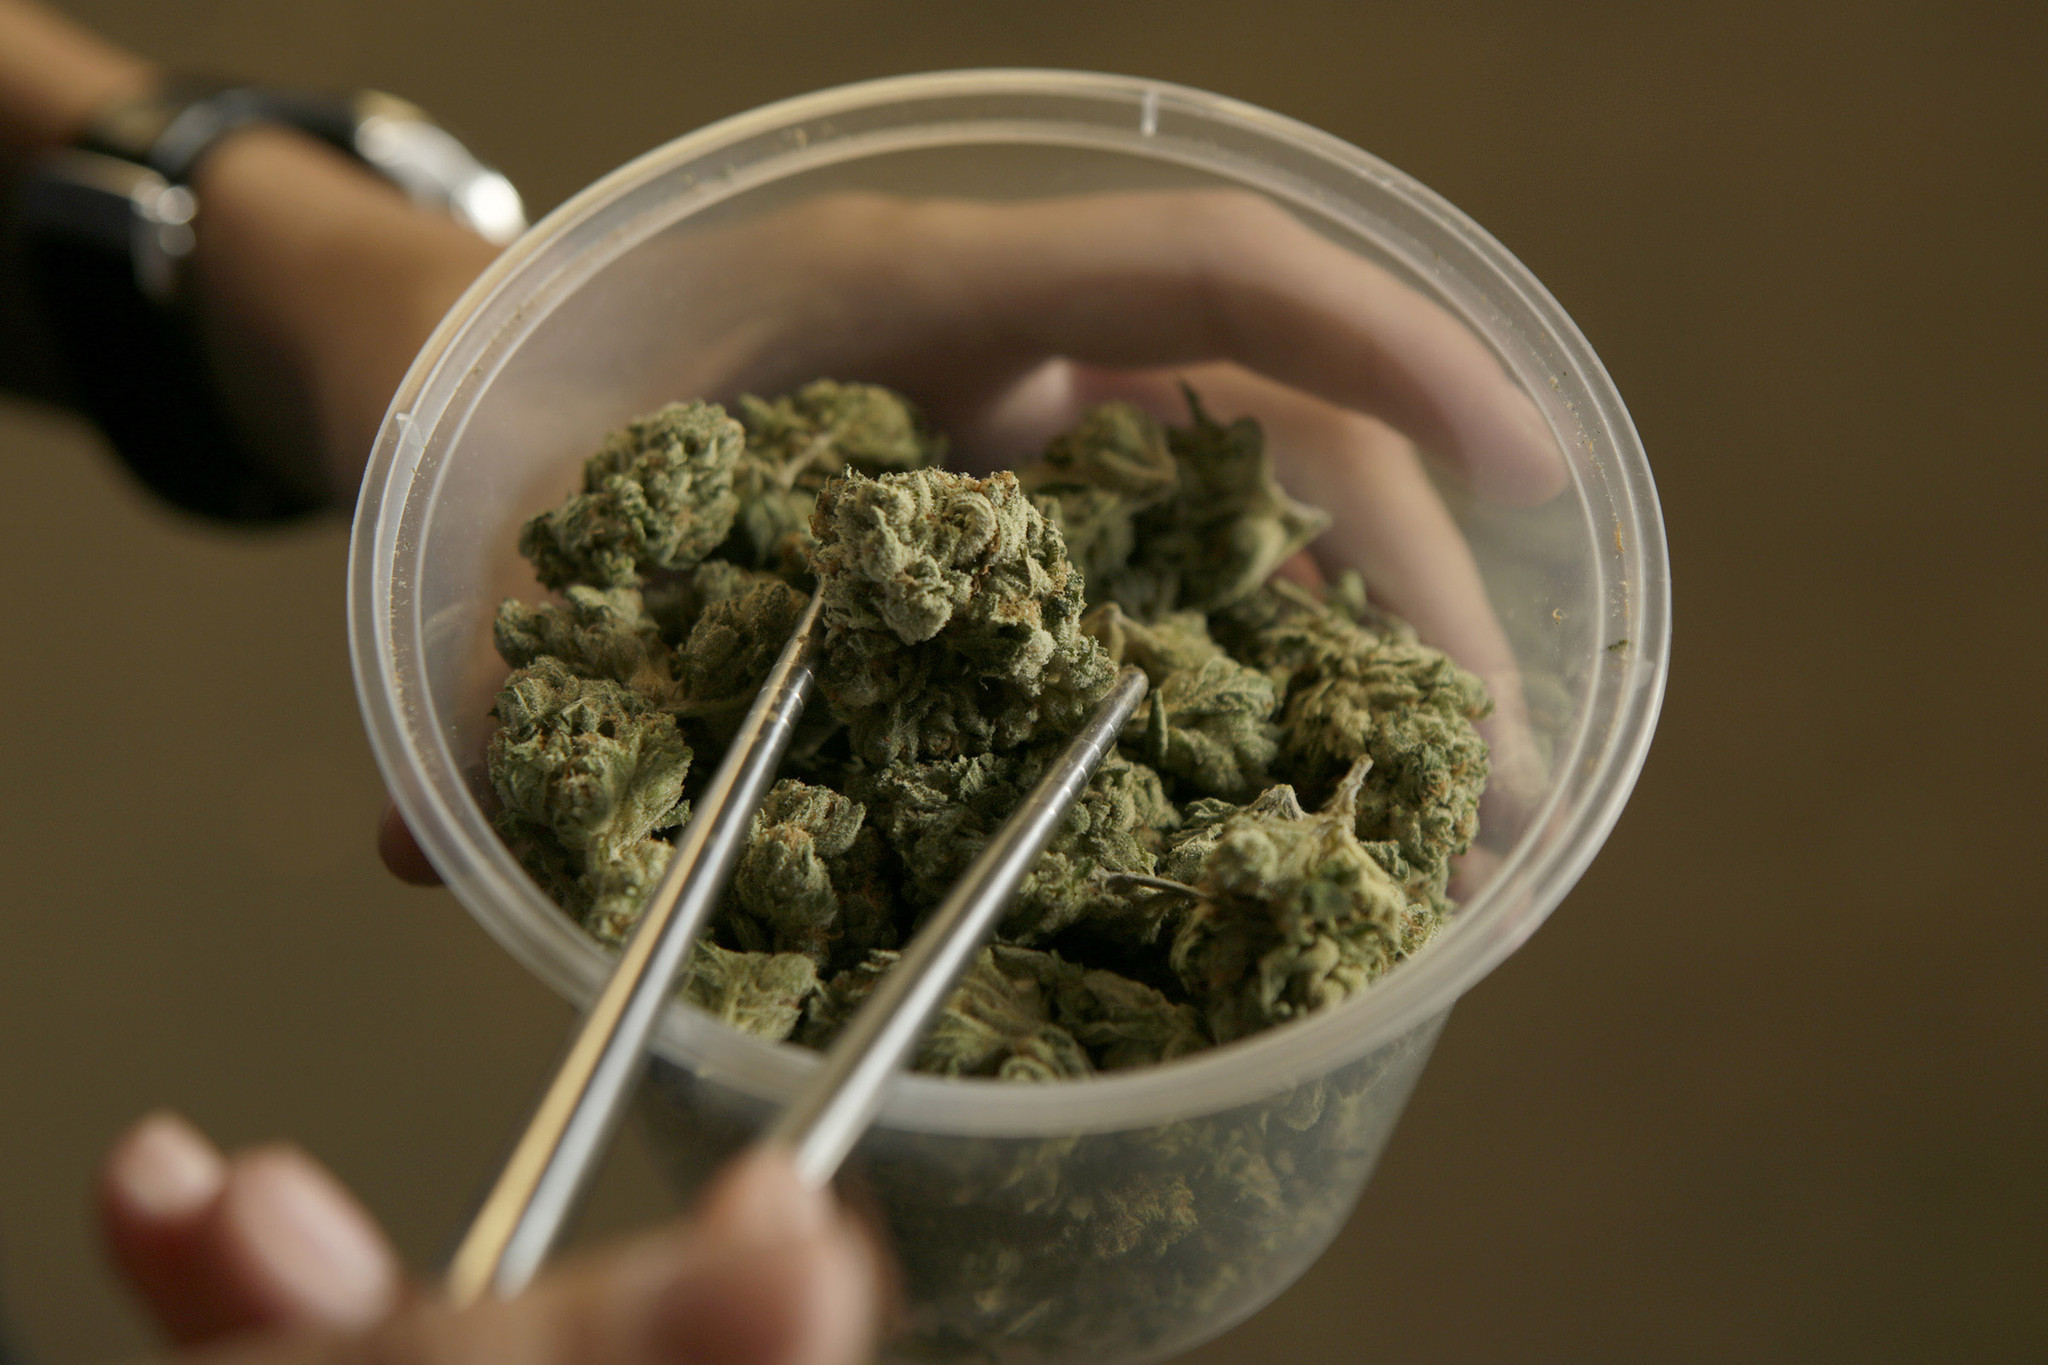 The state has put out new rules for testing marijuana planned for medical use. (Los Angeles Times)